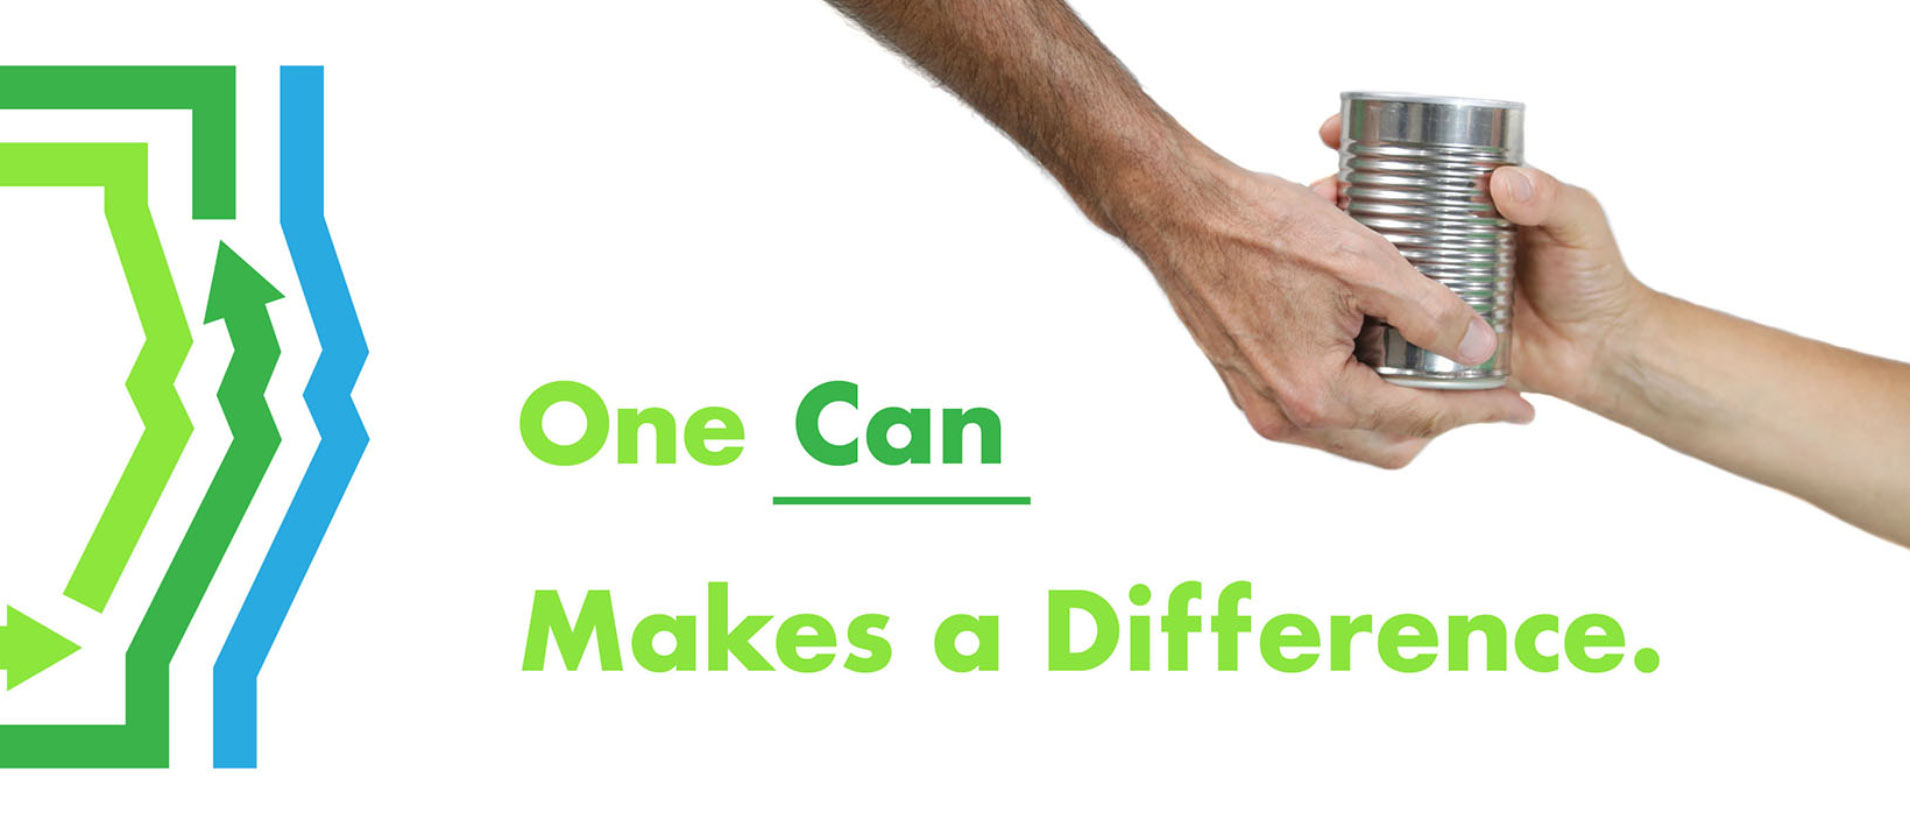 SCFB-One-Can-Makes-Difference-1910x834_c_optimised